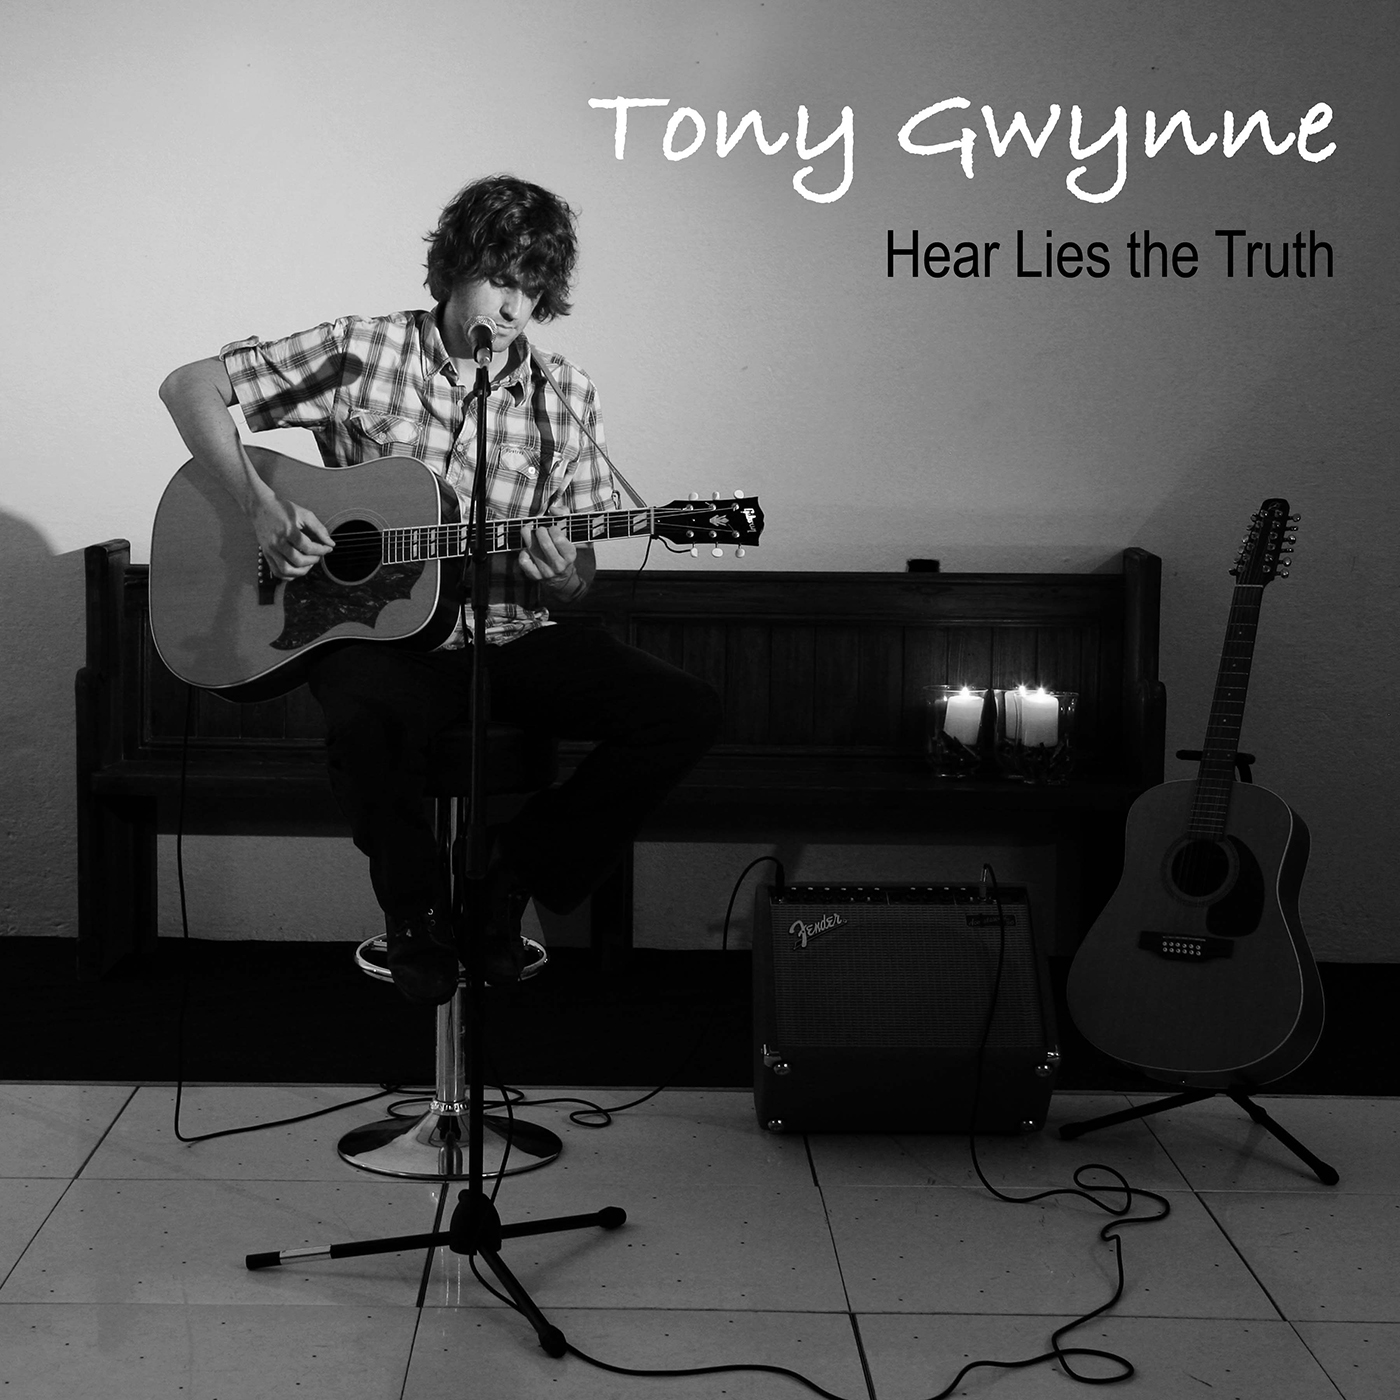 Artist:  Tony Gwynne   Title:  Hear Lies the Truth   Credit:  Performer, Additional Engineering   Year:  2011